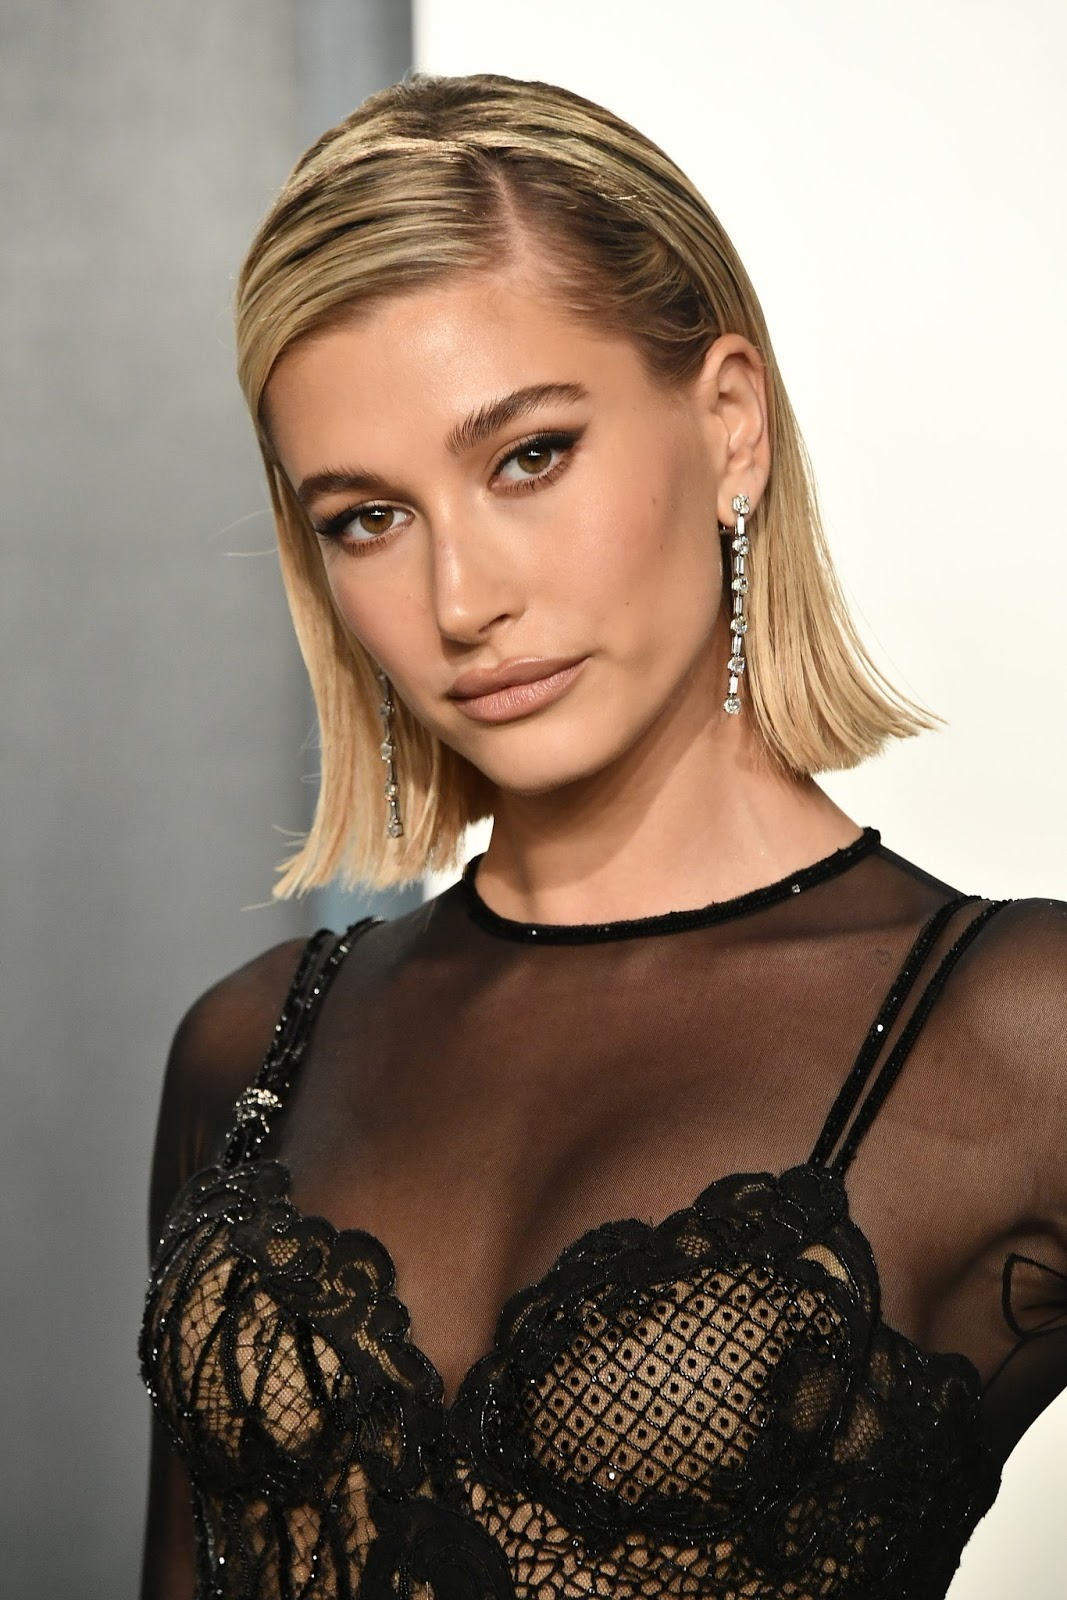 Hailey Bieber Leaves Her Undergarments at Home in Risqué Gown at the Vanity Fair Party